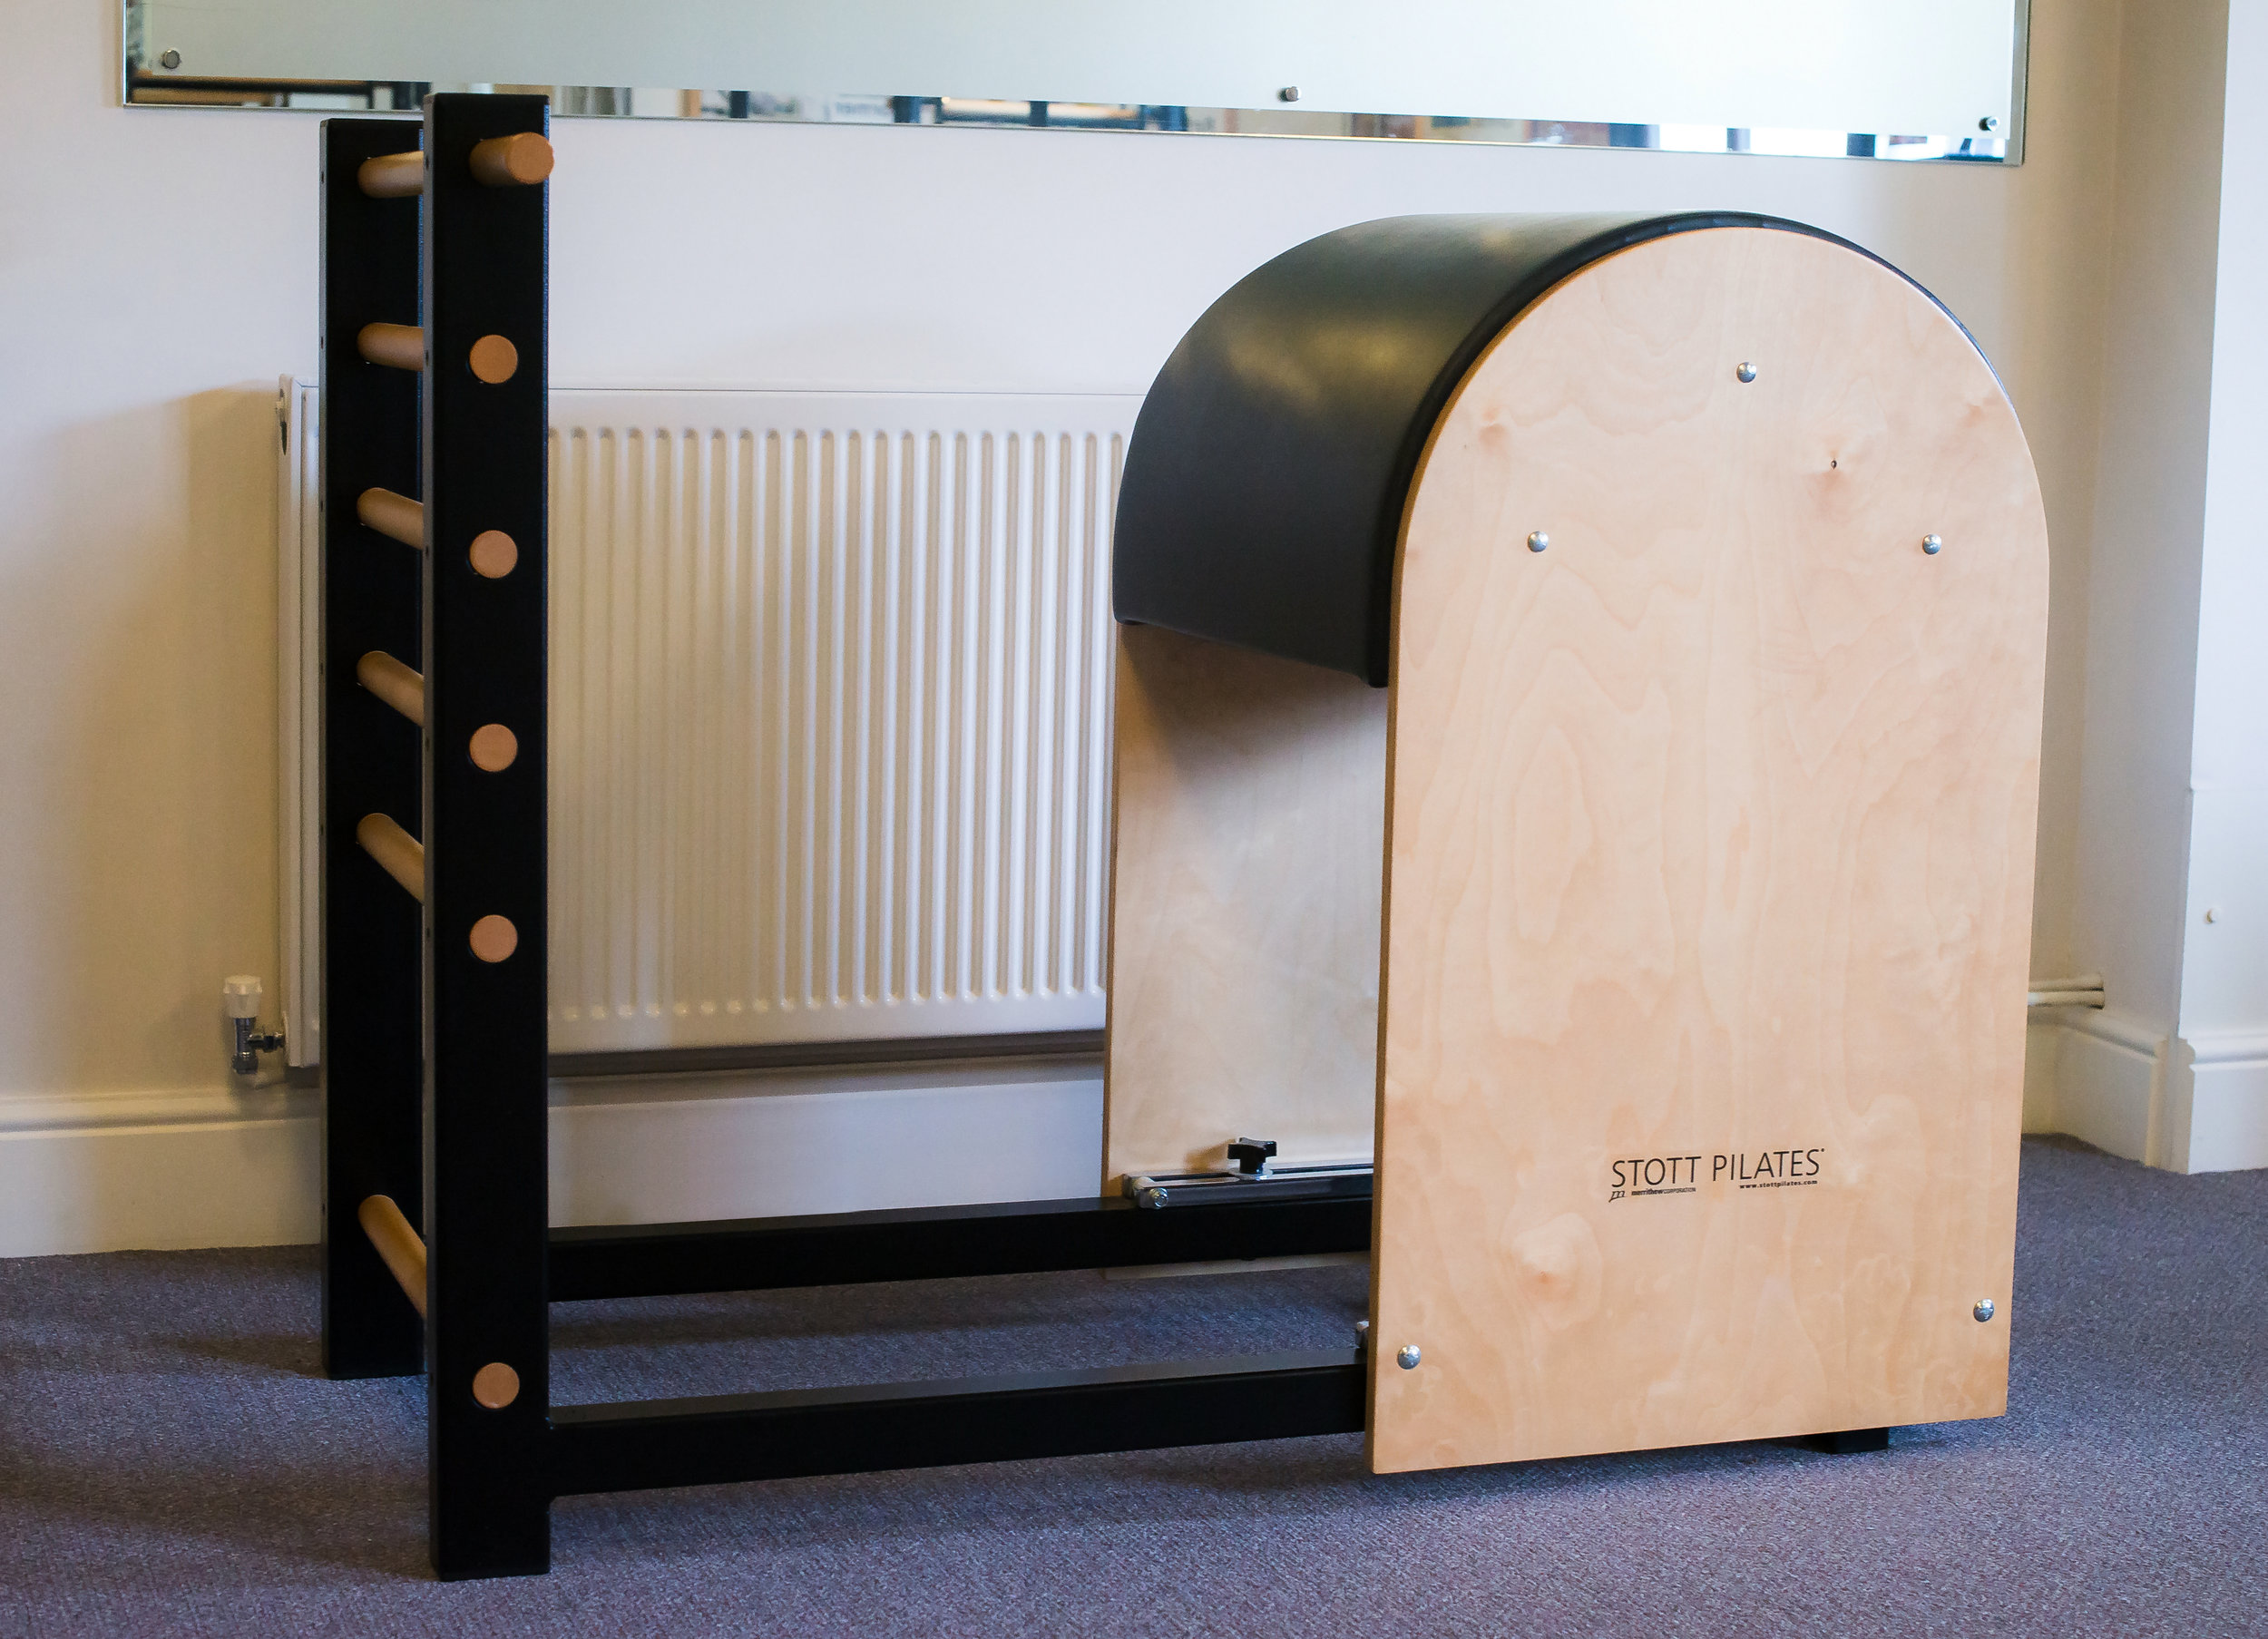 Ladder Barrel - From beginners to fully conditioned exerciser, the Ladder Barrel challenges core stability and strength for every Pilates enthusiast. it is designed for serious core conditioning and increase flexibility and mobility.